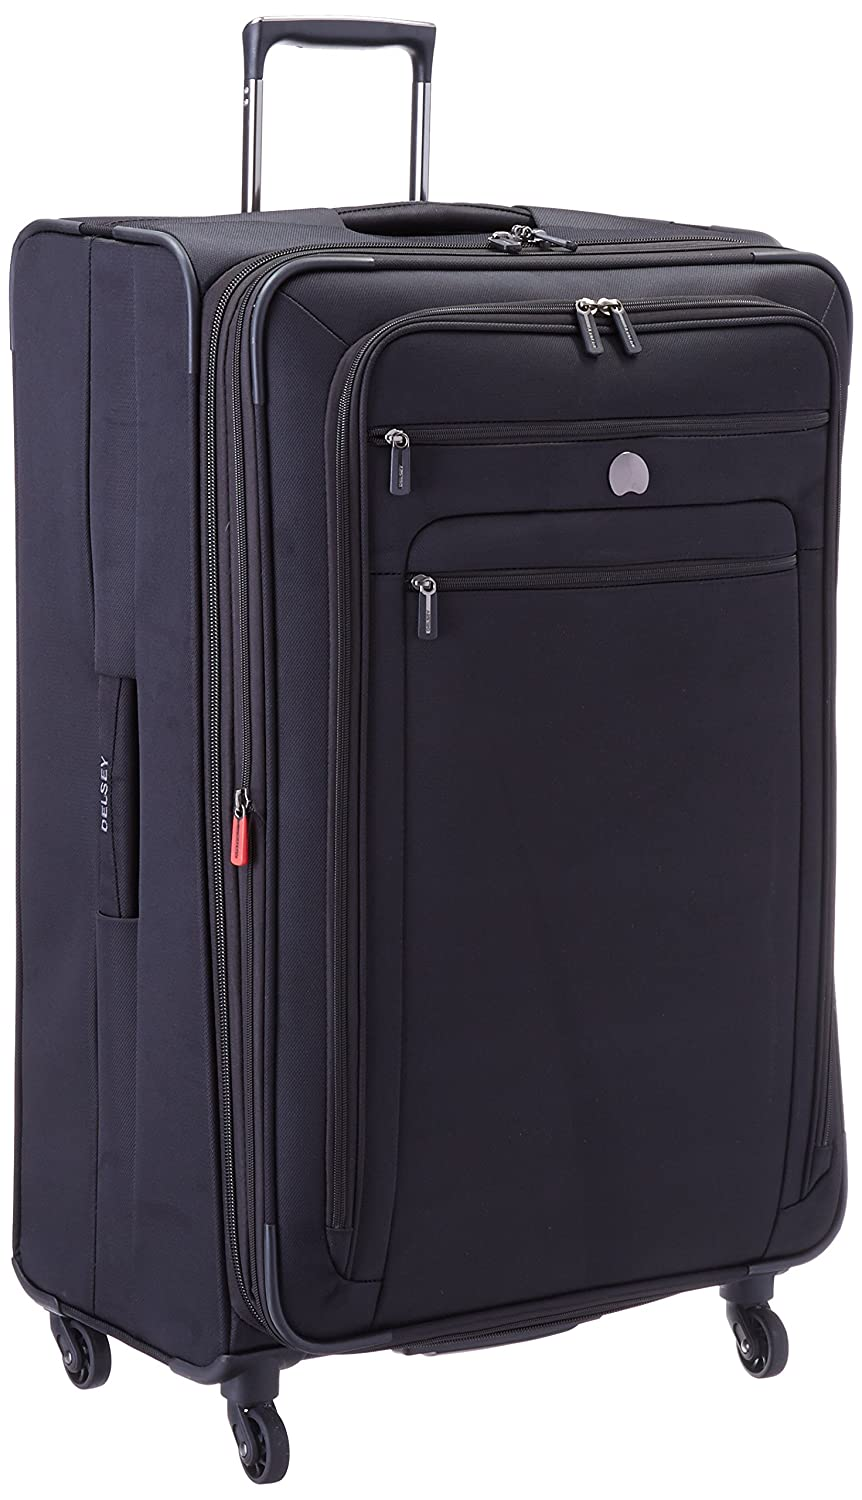 Delsey Luggage Helium Sky 2.0 29 Expandable Spinner Trolley Suitcase Inc. 40328183000